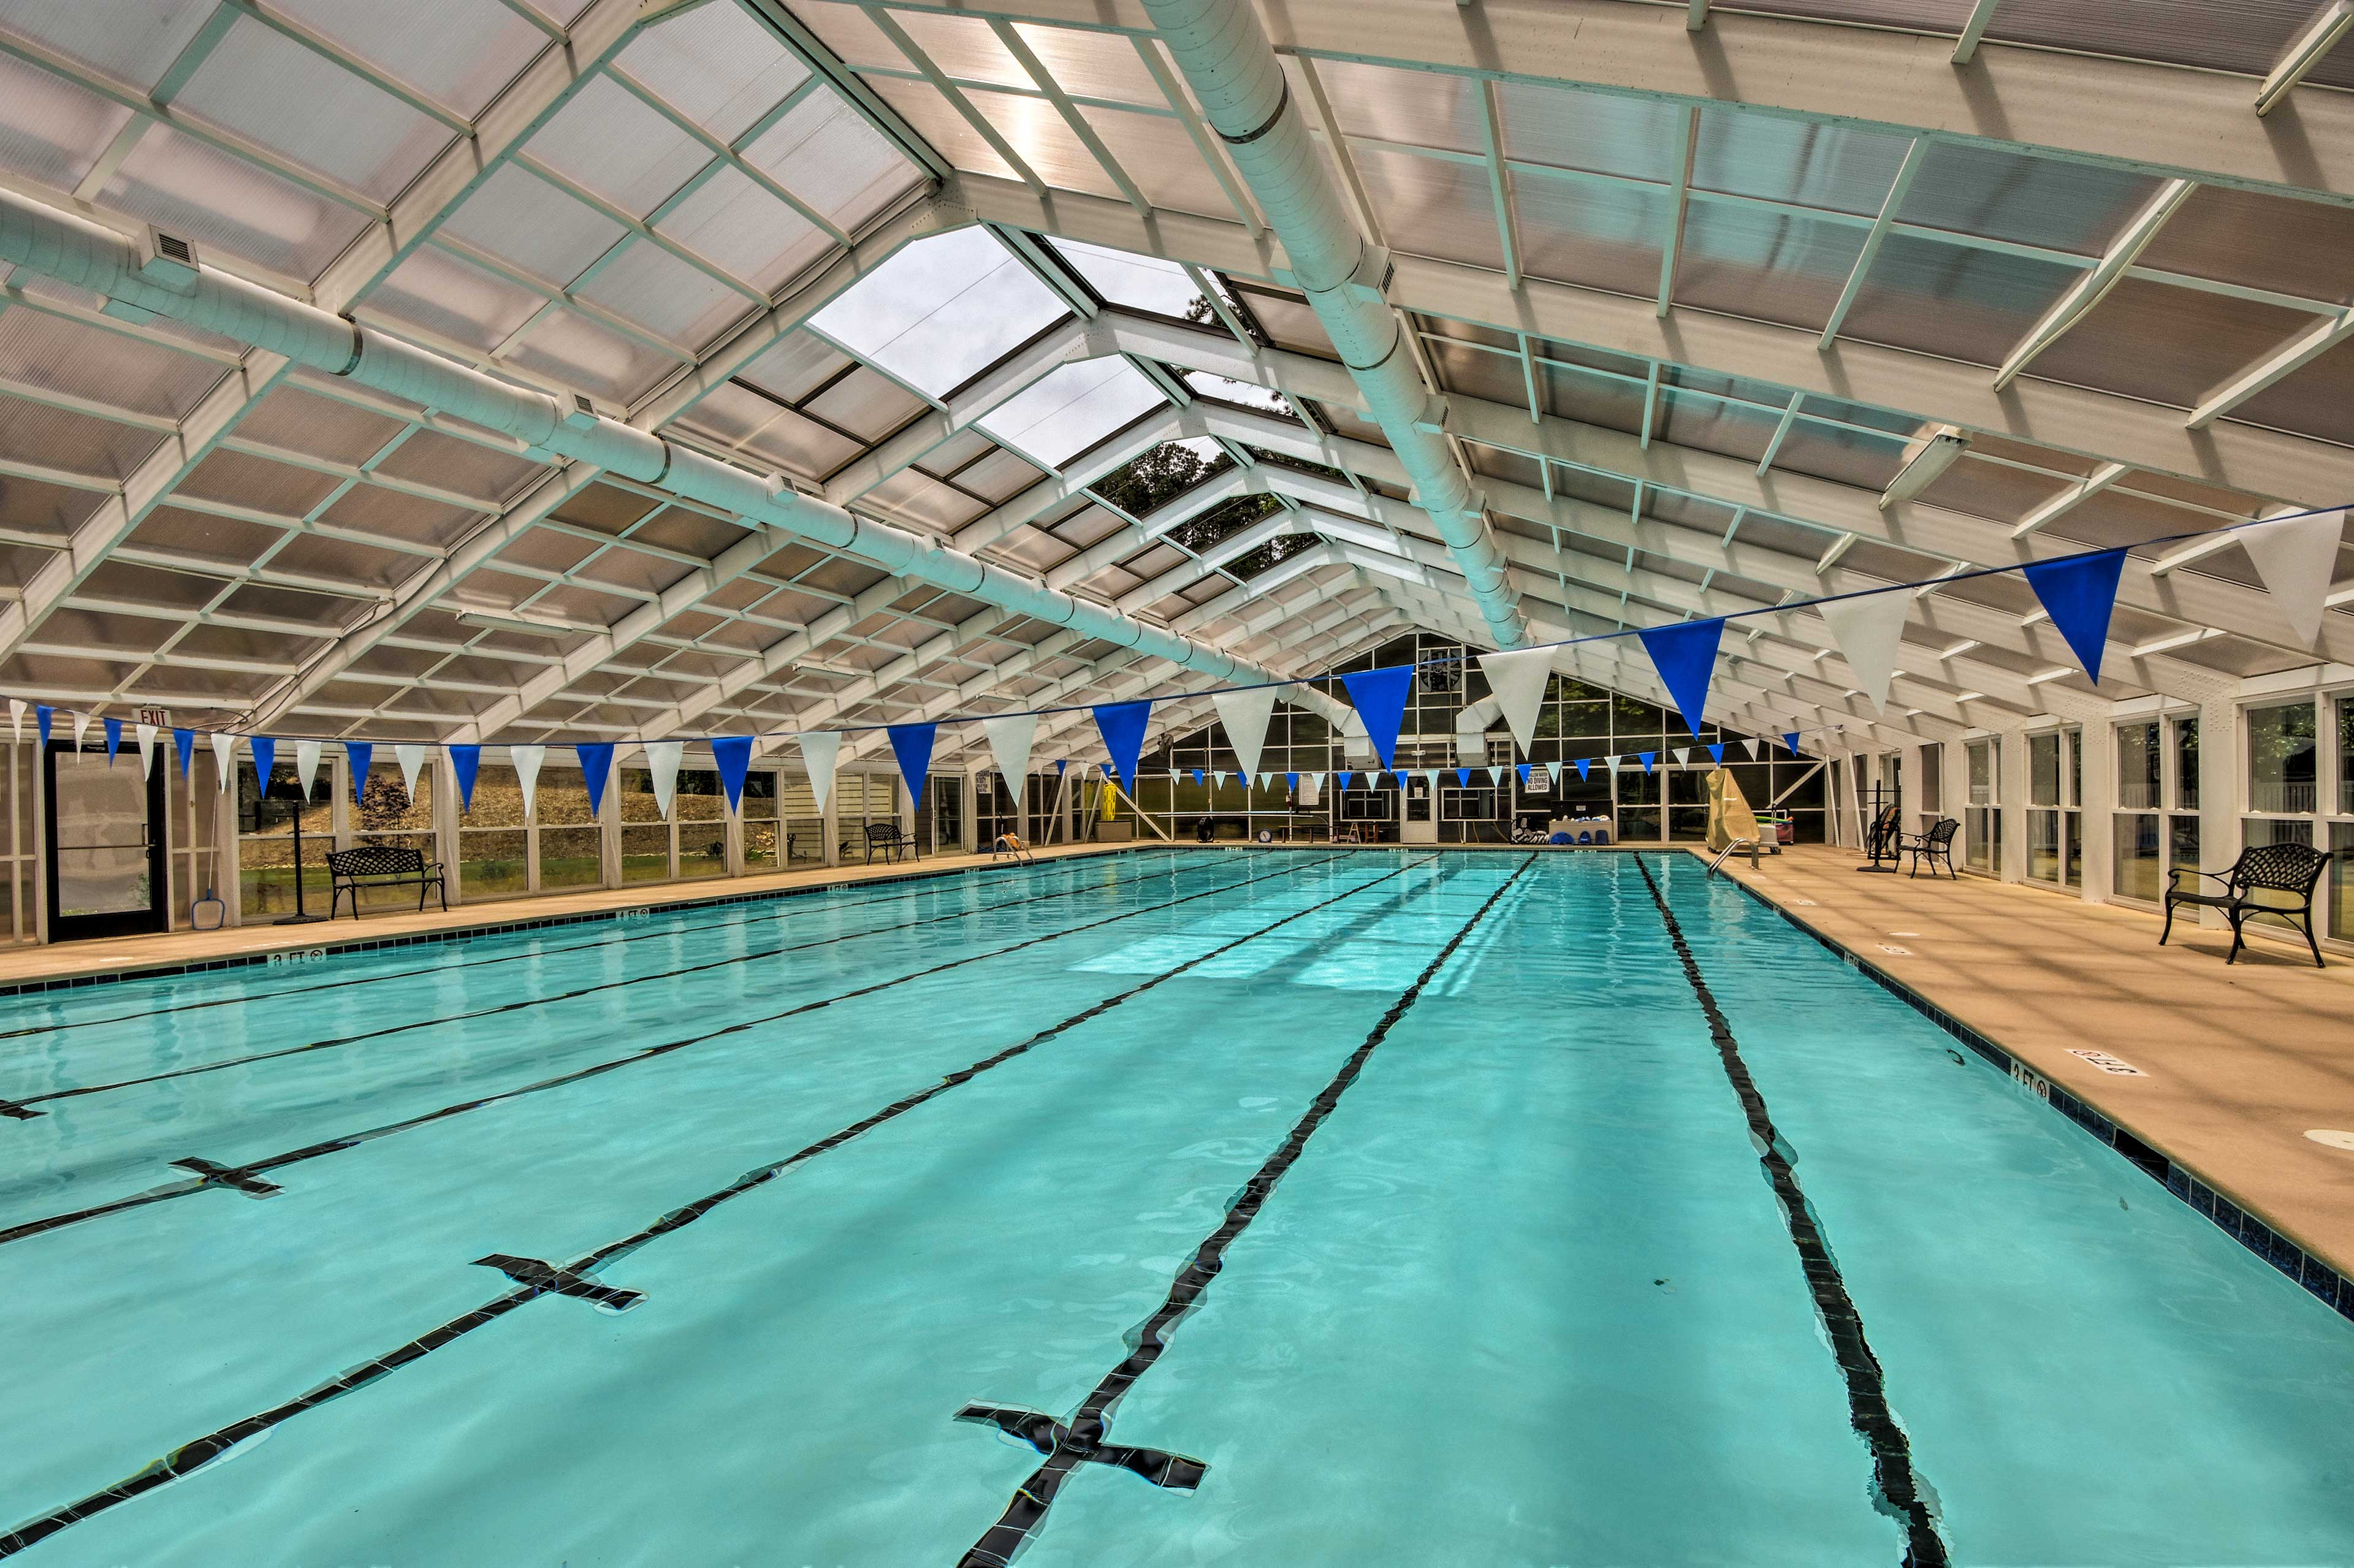 Compete with friends and family in the full-sized indoor pool.